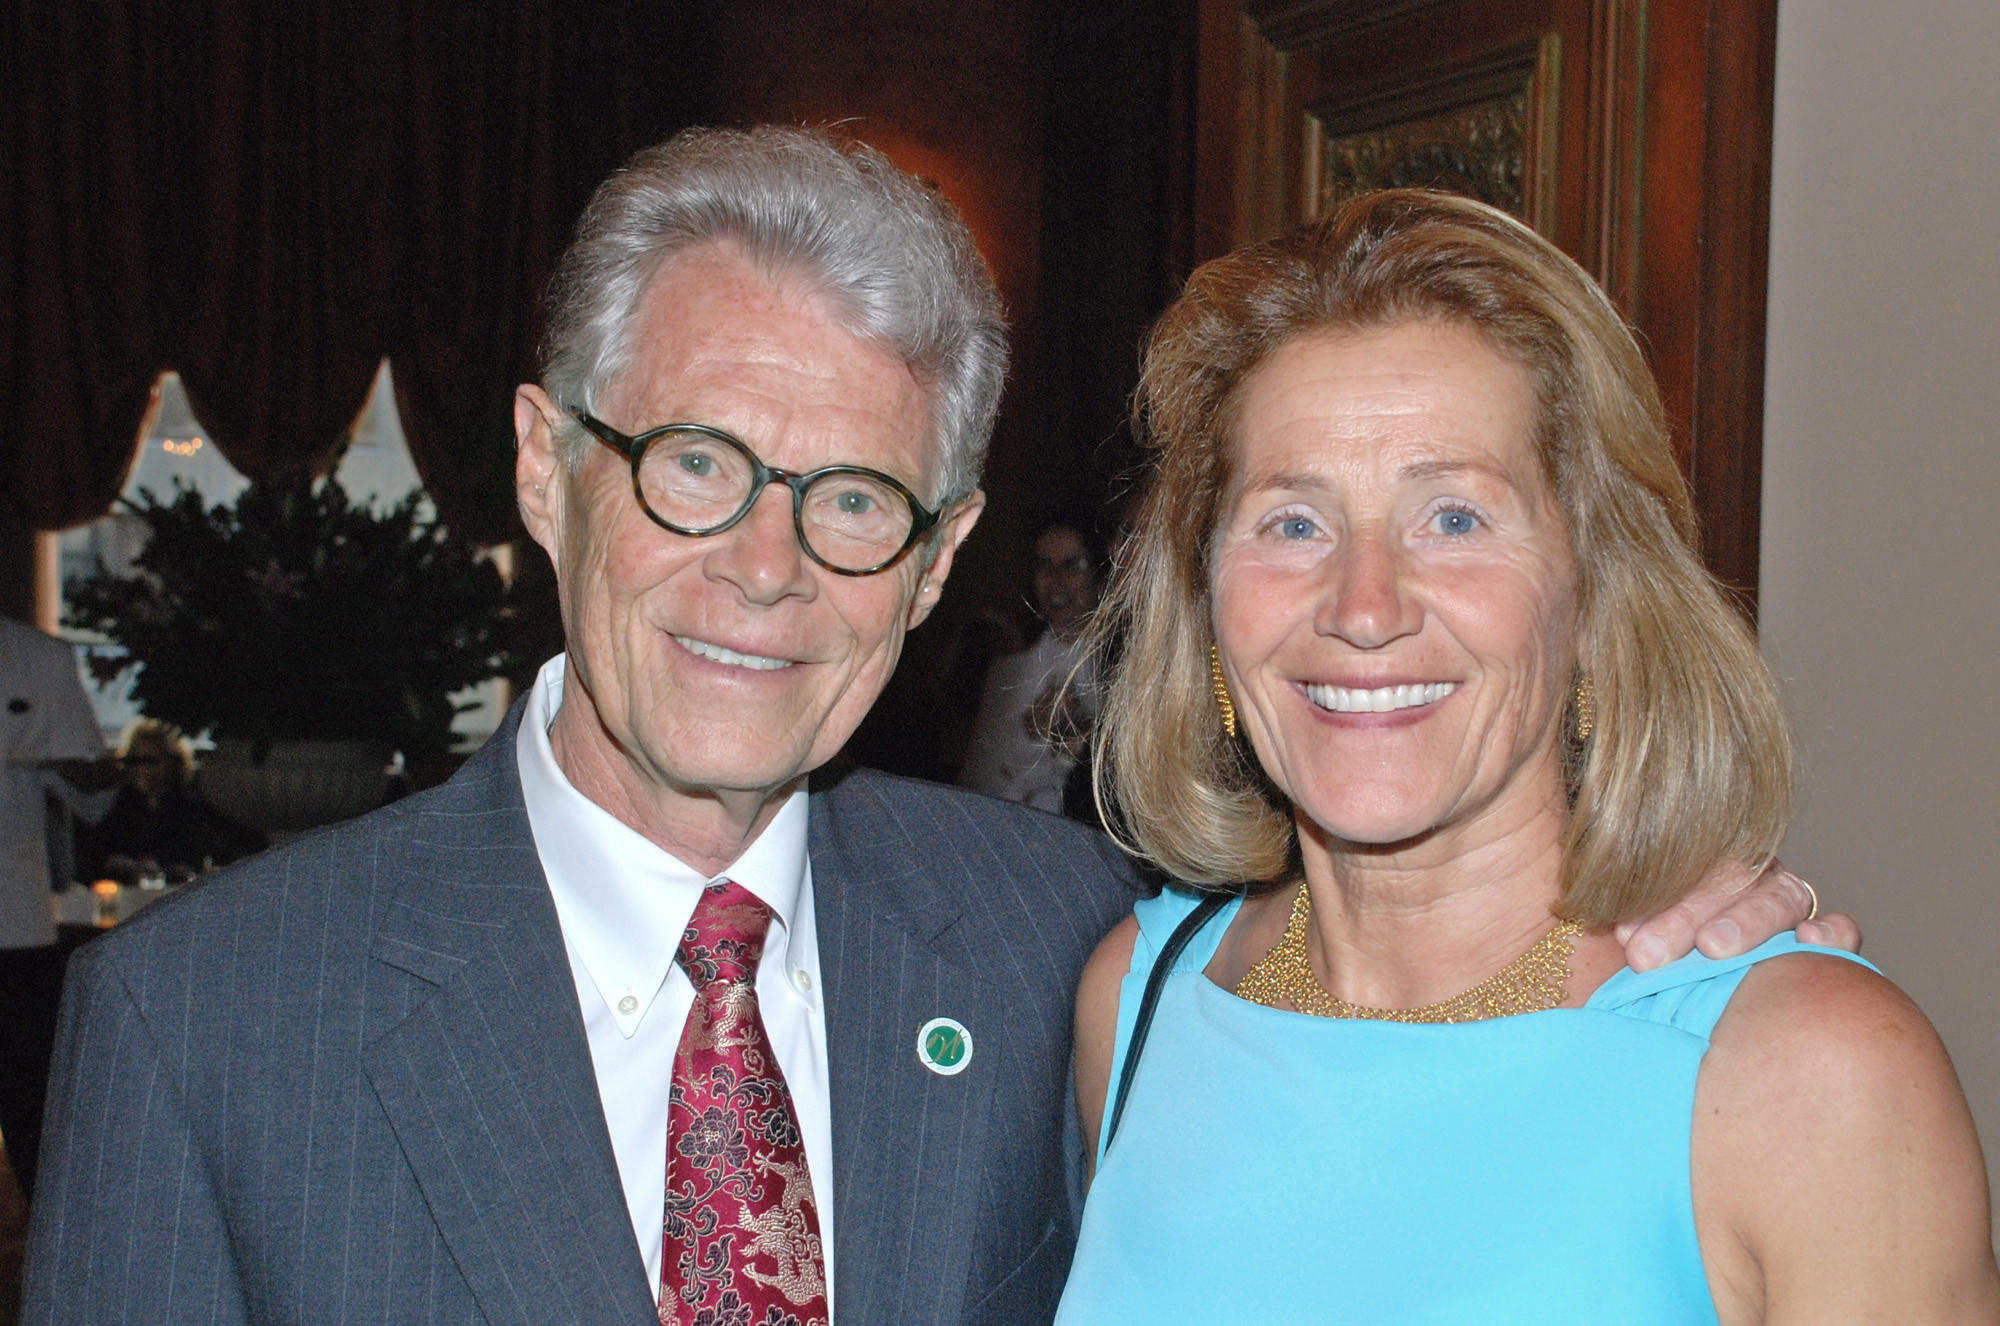 Retiring Woodbury University President Kenneth Nielsen and his wife Rose at The Jonathan Club in June 2012. Rose Nielsen claimed she was fired in September 2012 after reporting alleged mistreatment of other university employees by the wife of Luis Calingo, the colleges then newly named president. The case was recently dismissed.